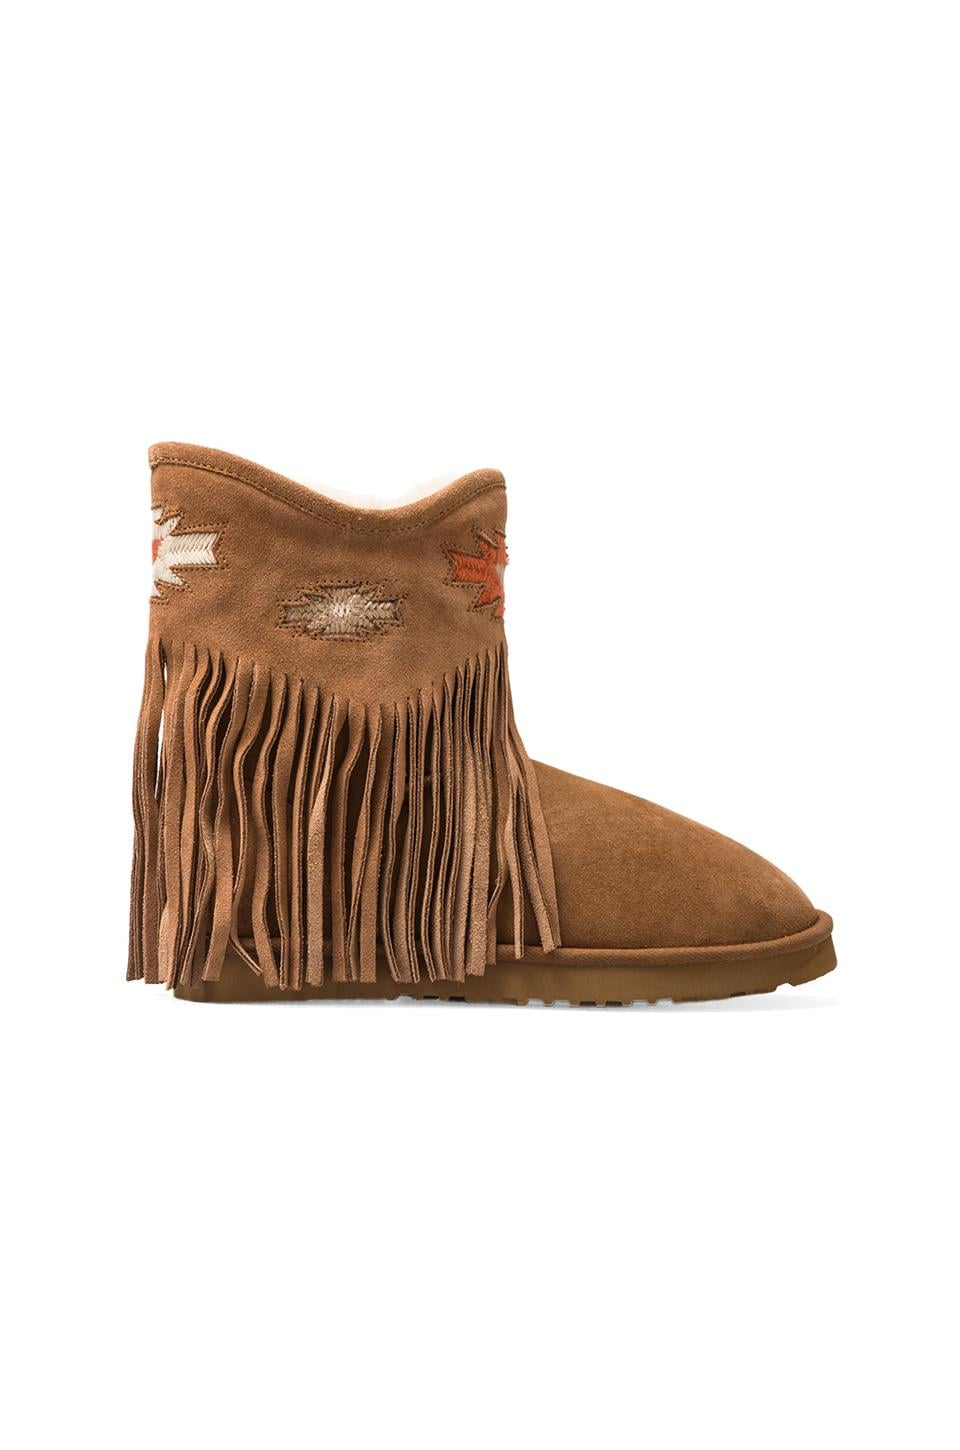 Koolaburra Haley Ankle Deco Boot with Twinface Sheepskin in Chestnut